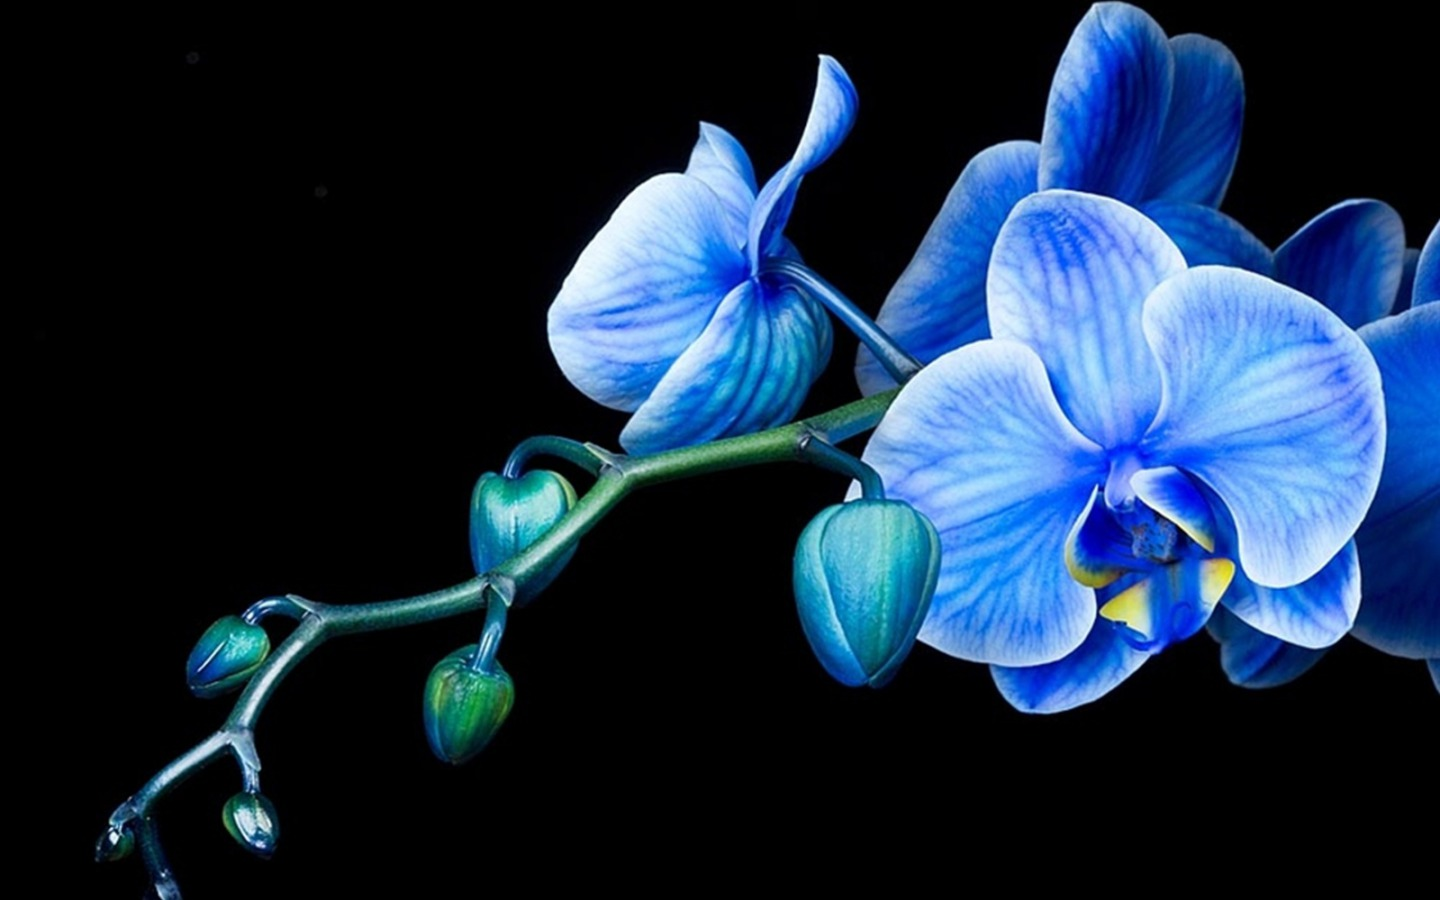 Habrumalas orchids in water wallpaper images - Free Orchid Wallpaper Wallpapersafari